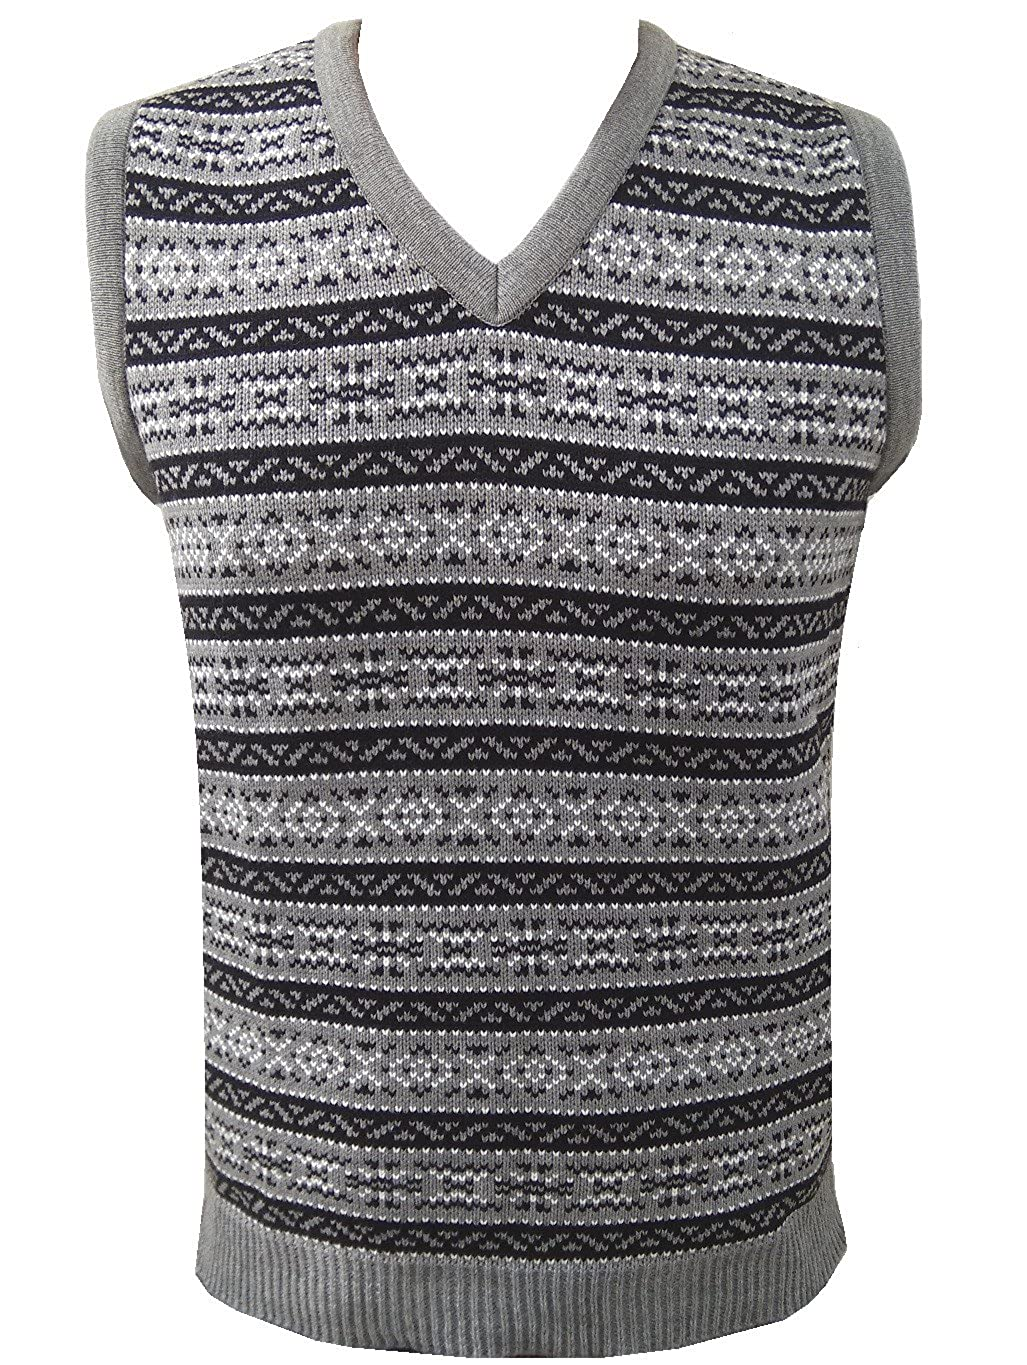 1940s Style Mens Shirts, Sweaters, Vests London Knitwear Gallery Aztec Retro Vintage Knitwear Tanktop Sleeveless Golf Sweater £18.99 AT vintagedancer.com